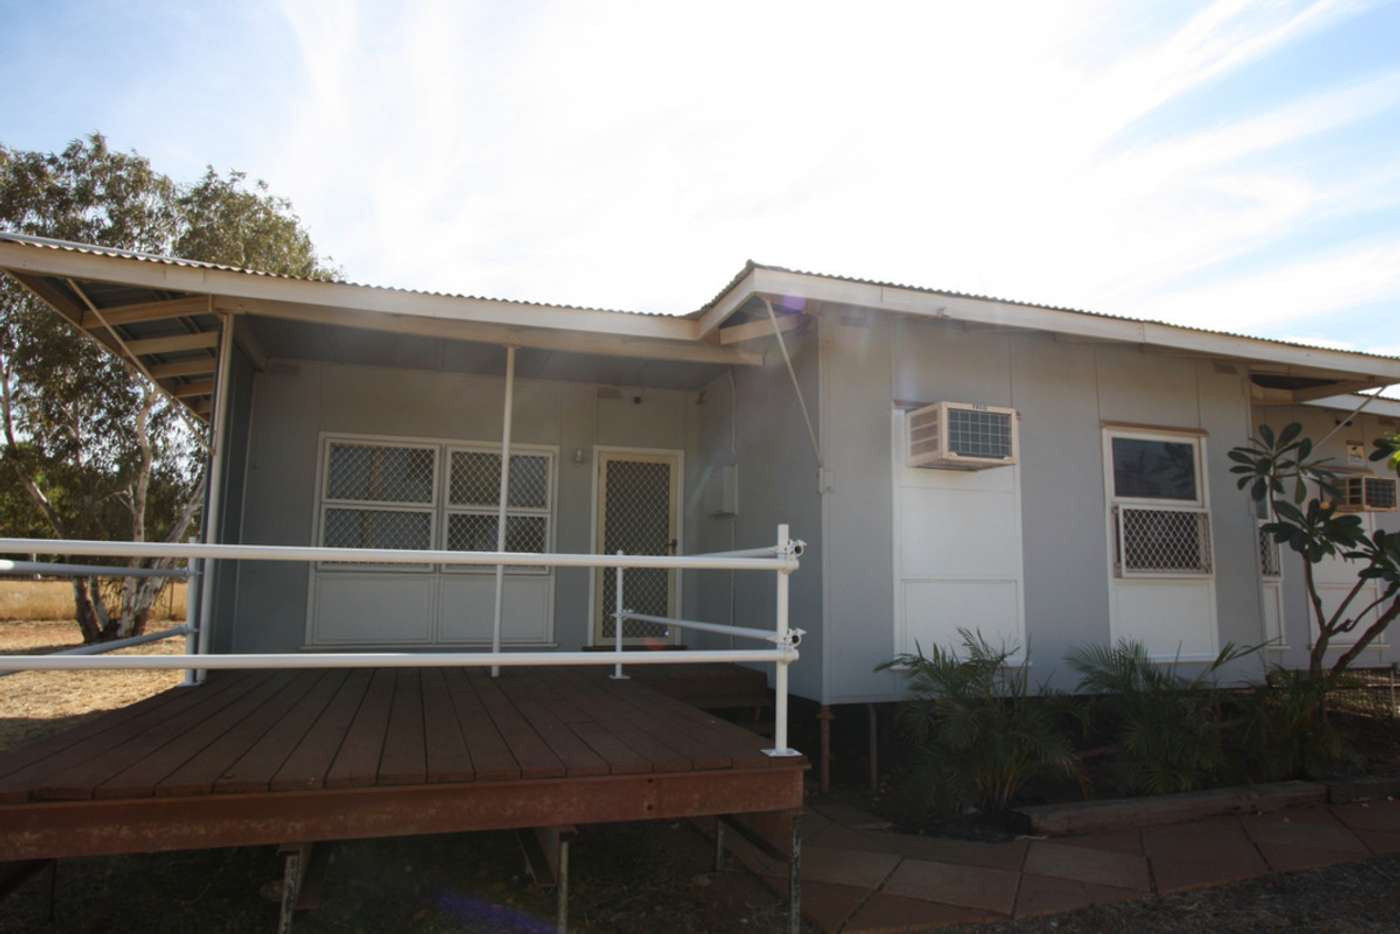 Sixth view of Homely house listing, 99 Anderson Street, Port Hedland WA 6721